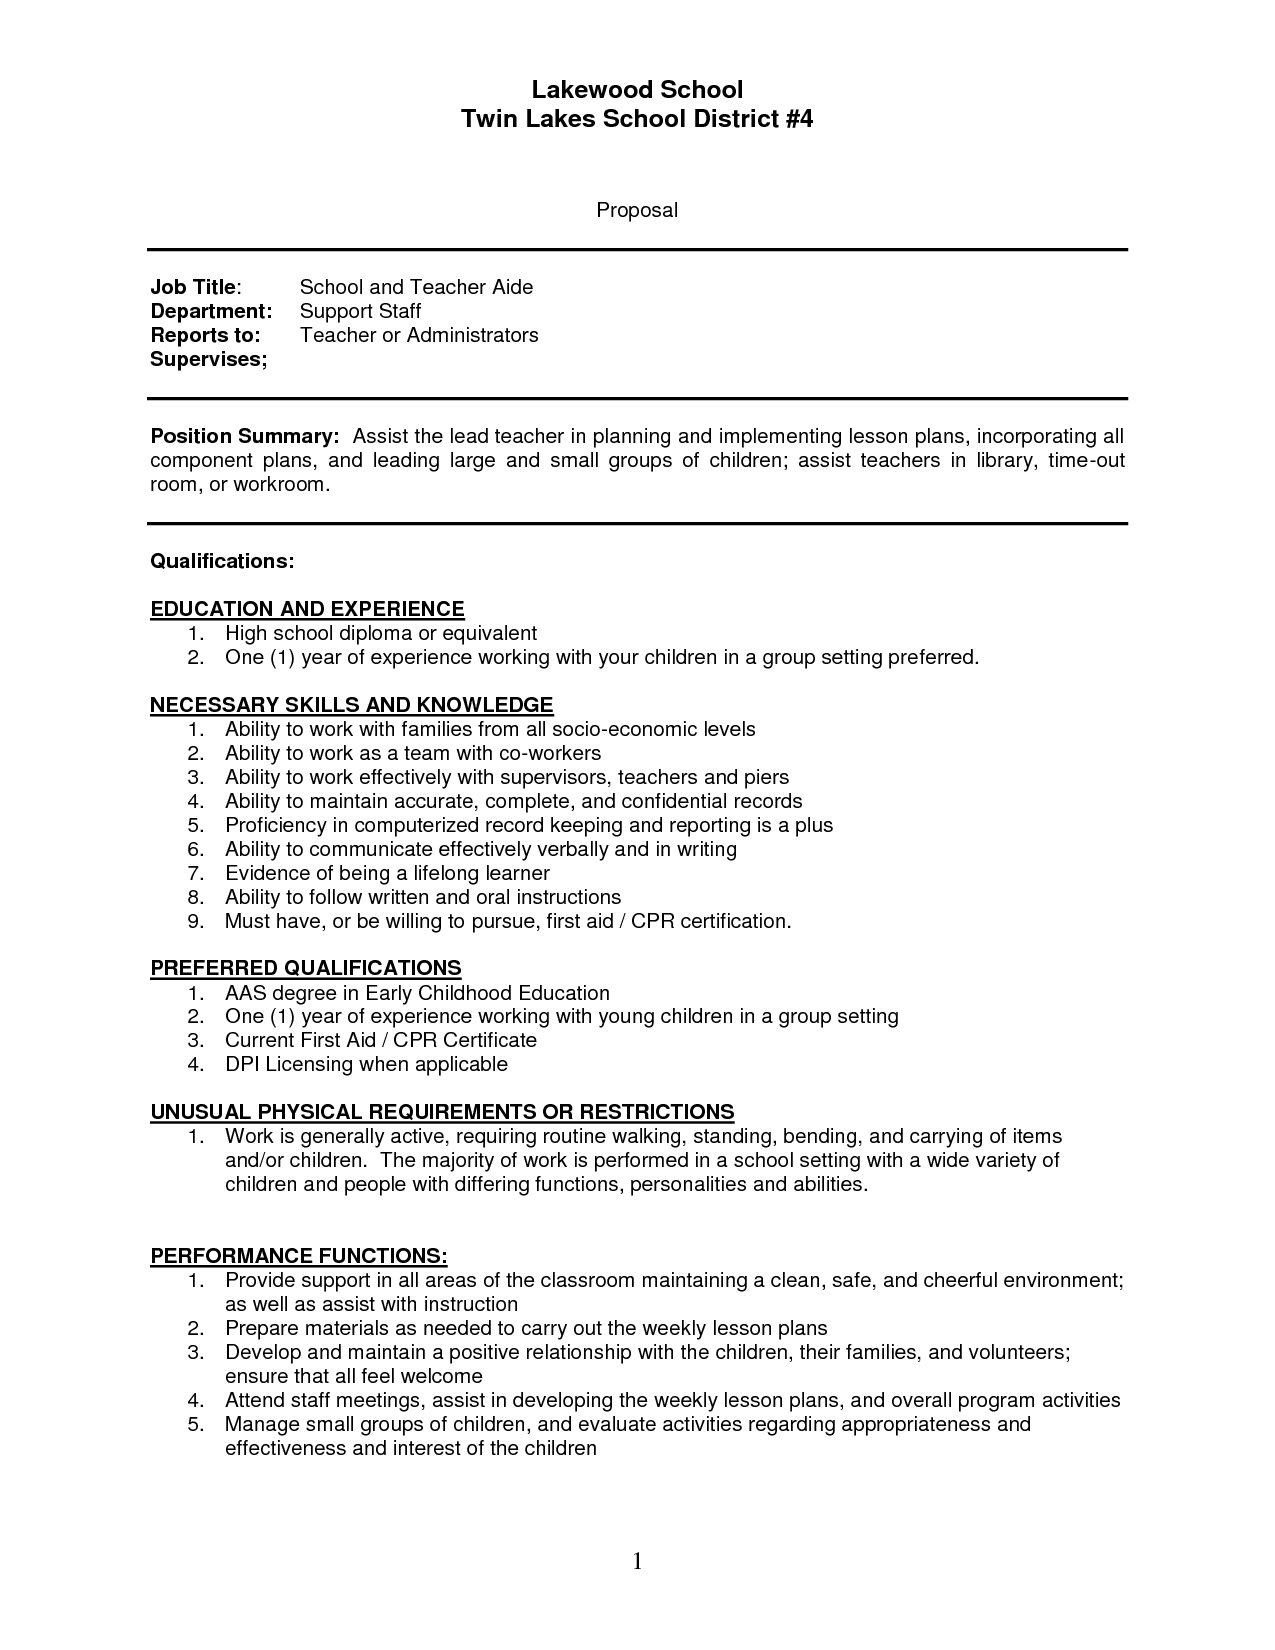 teacher assistant sample resume sample resume of teachers aides resume for teacher - Sample Resume For Teacher Assistant